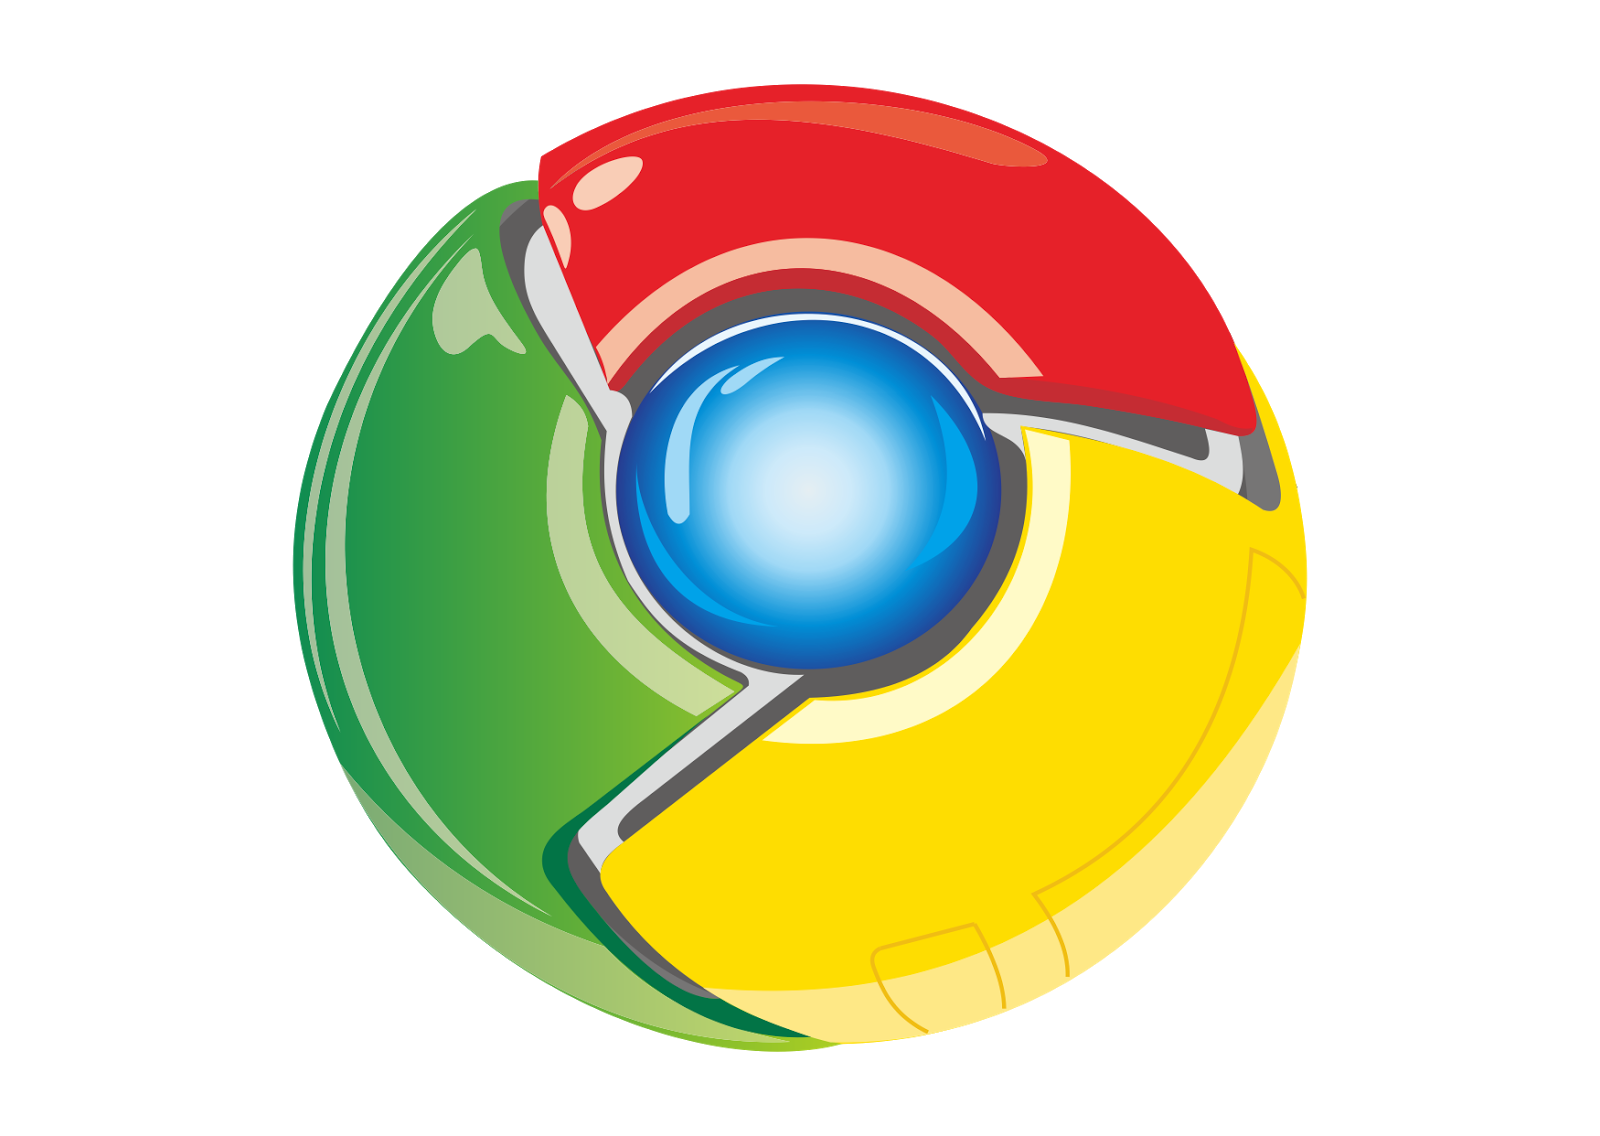 Google Chrome Logo Vector~ Format Cdr, Ai, Eps, Svg, PDF, PNG